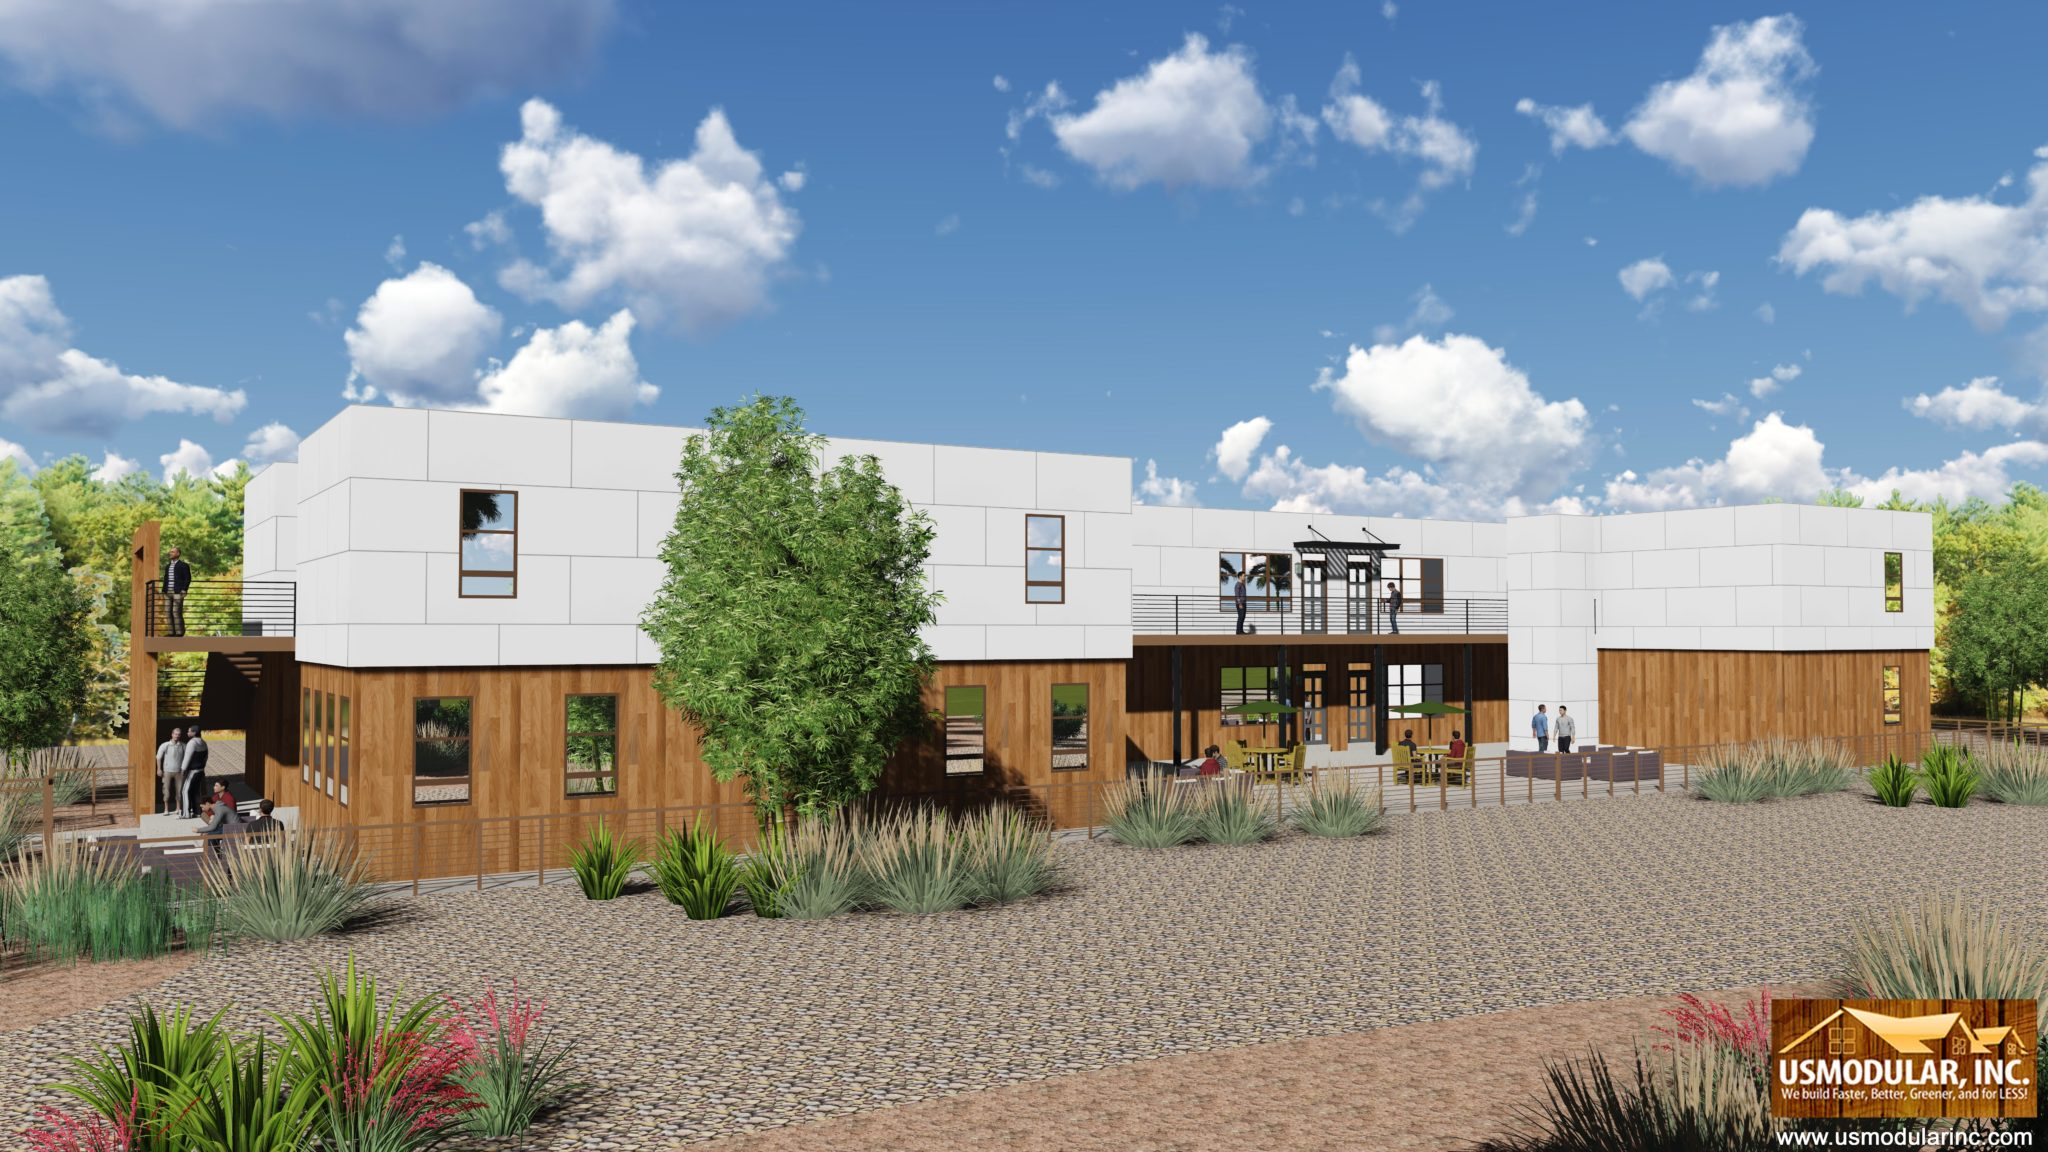 Modular Construction Creates Affordable Housing For